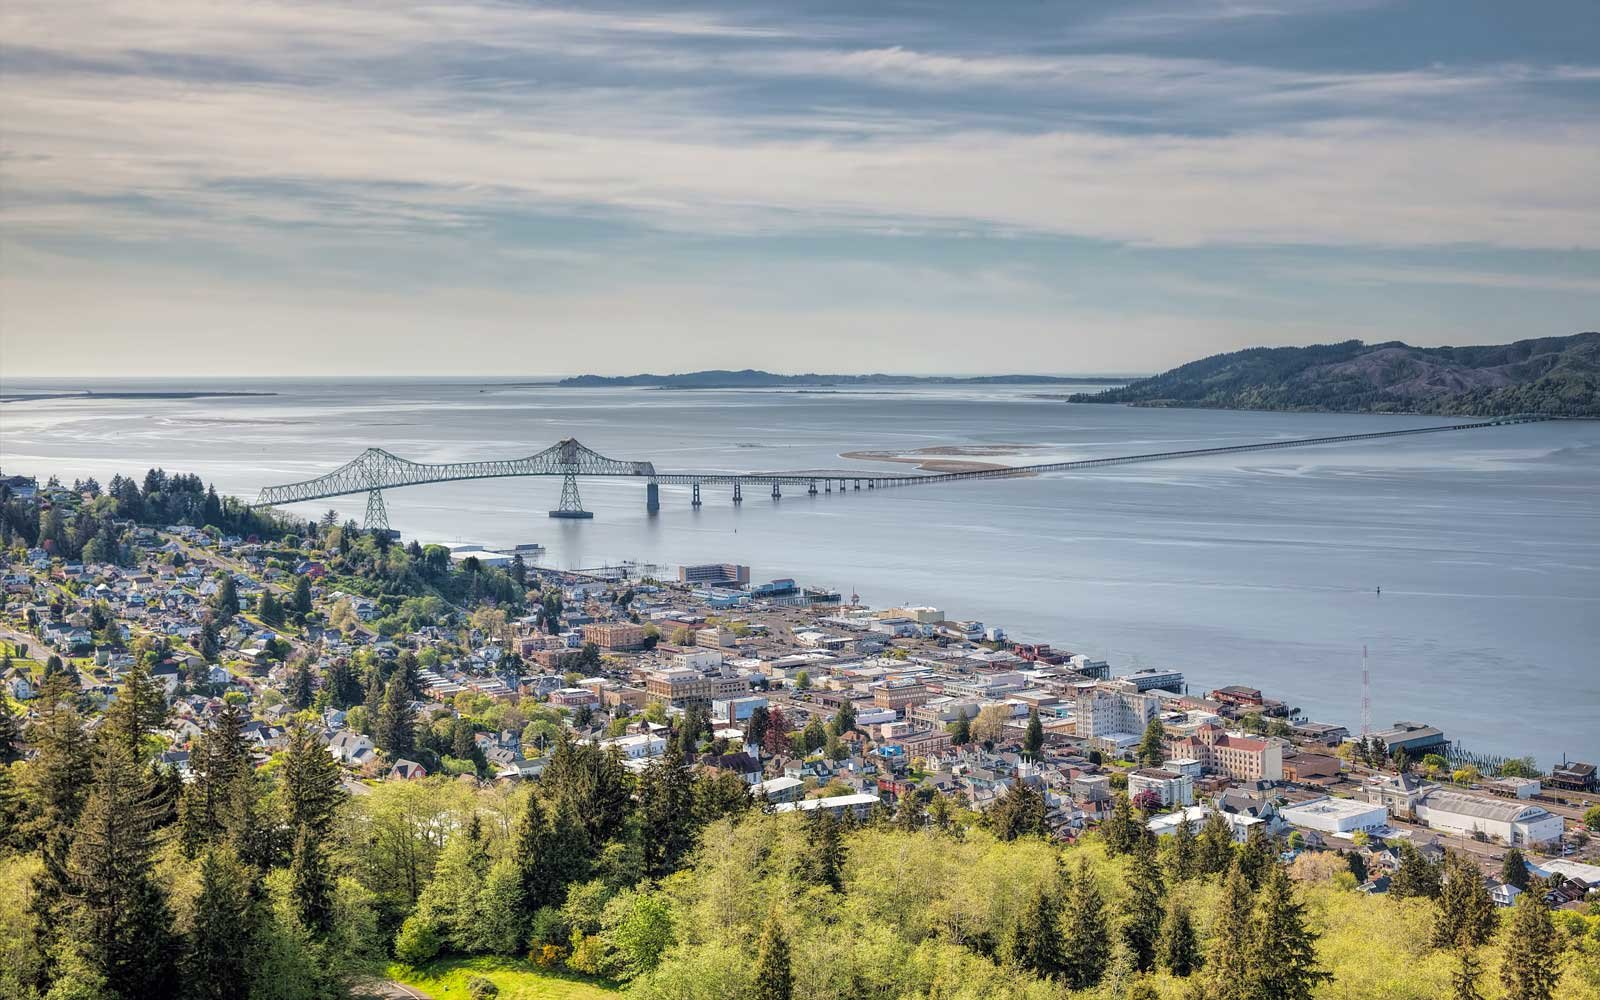 Astoria, Oregon cityscape with view of Astoria-Megler Bridge